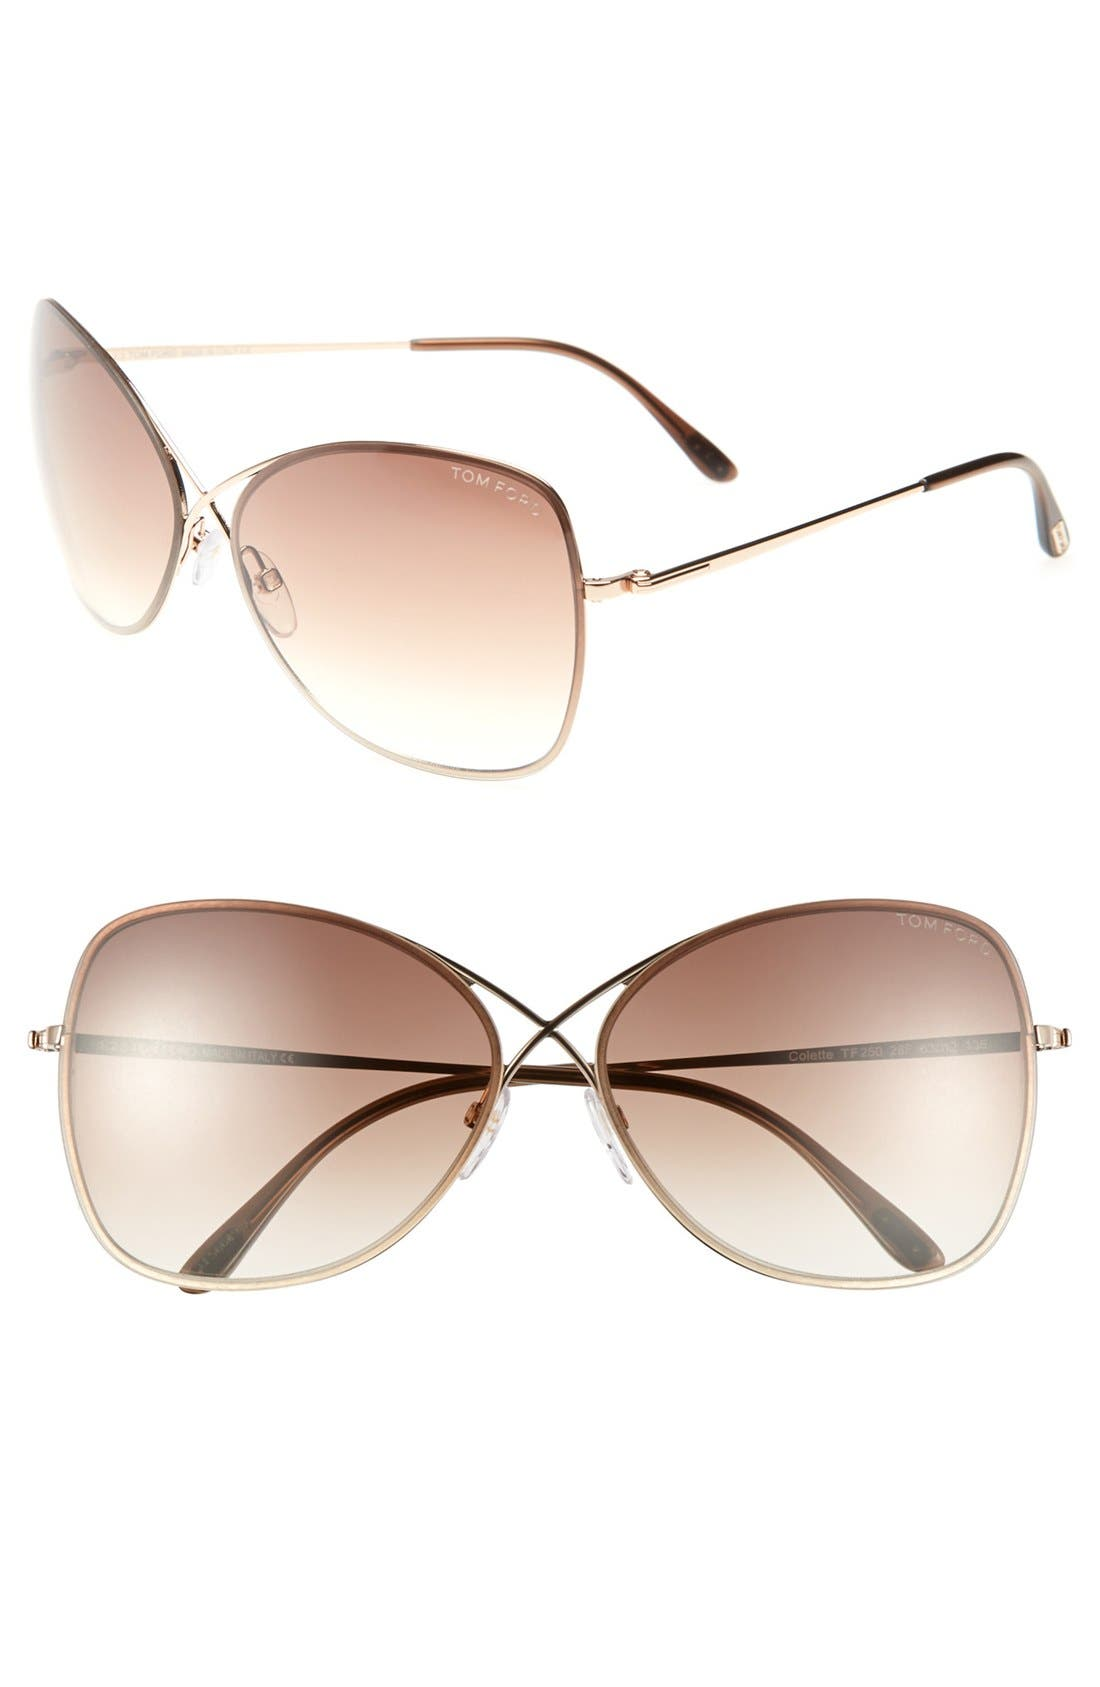 TOM FORD Colette 63mm Oversize Sunglasses